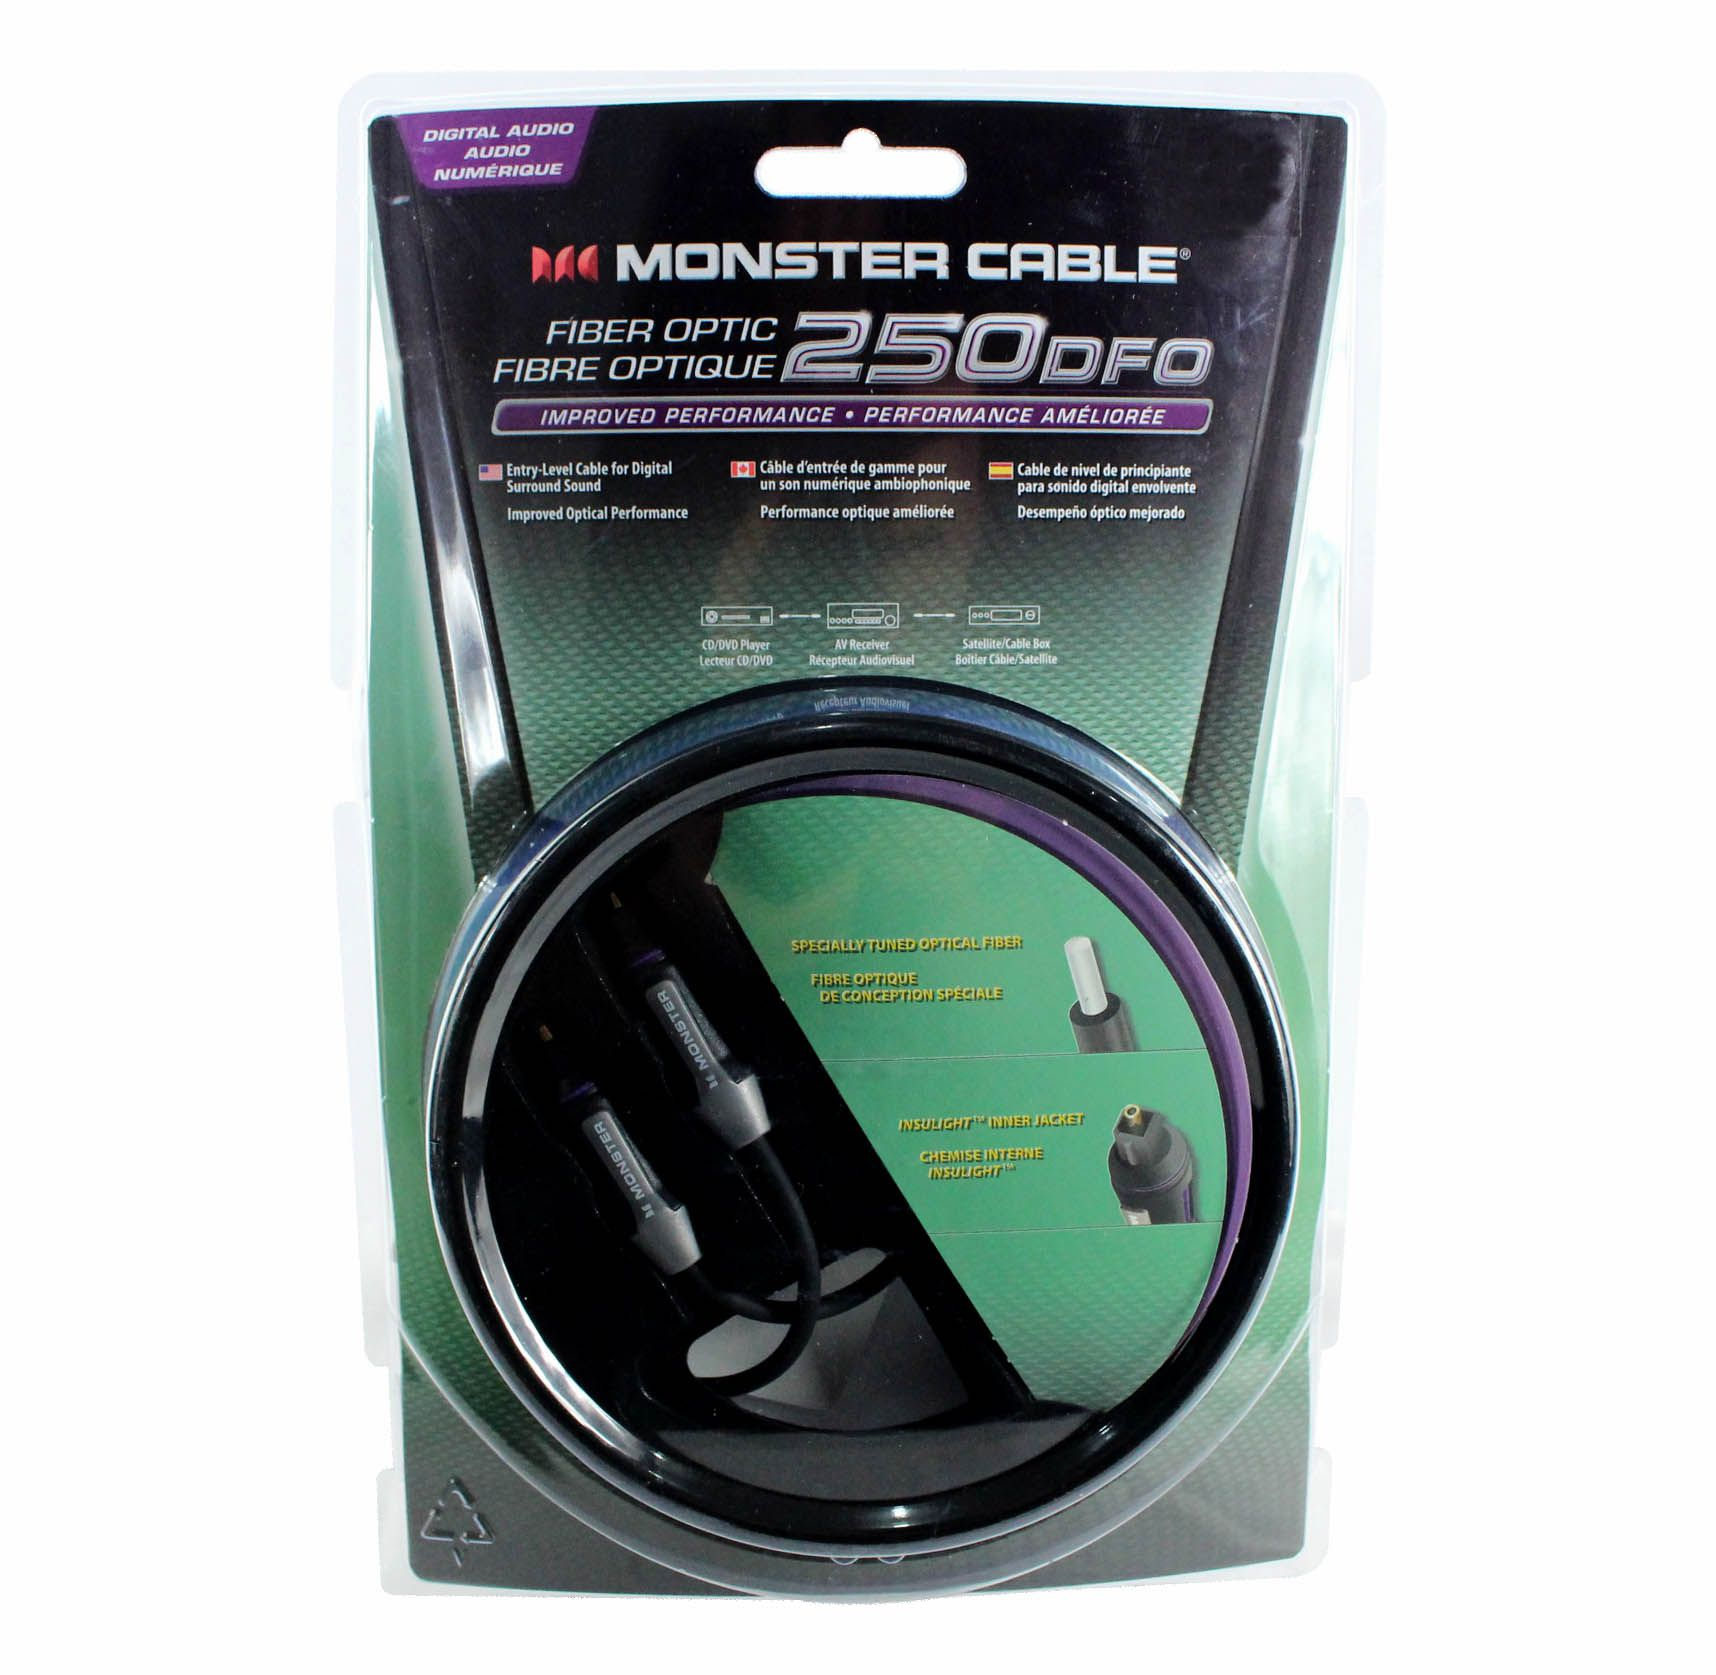 Cabo óptico - 1 metro Monster Cable MC250DFO-1M-EFS